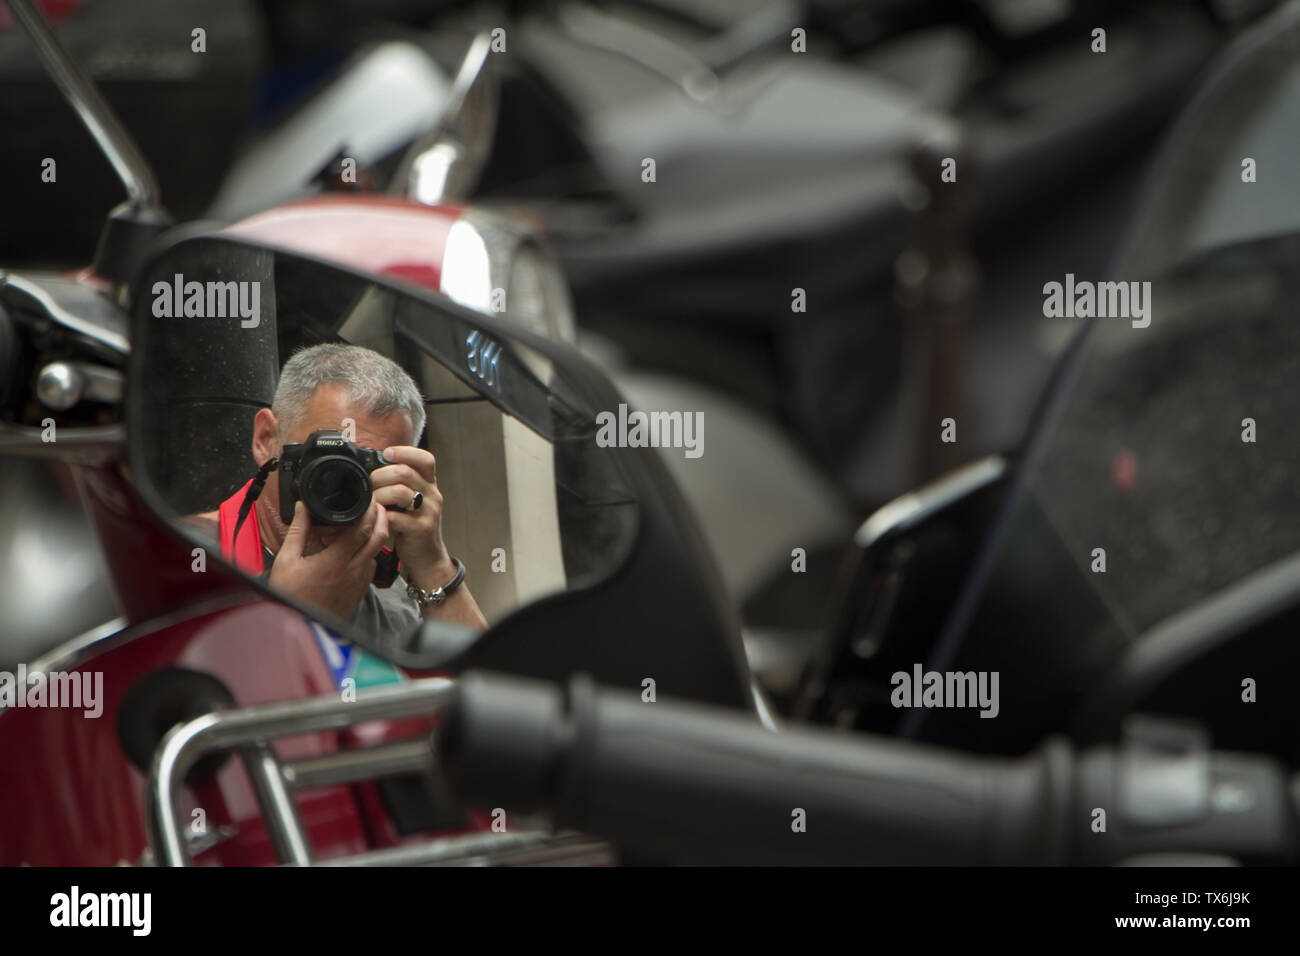 Paris, France - July 05, 2018: A photographer takes his selfie in the rearview mirror of a motorcycle parked on a street in Paris. Stock Photo